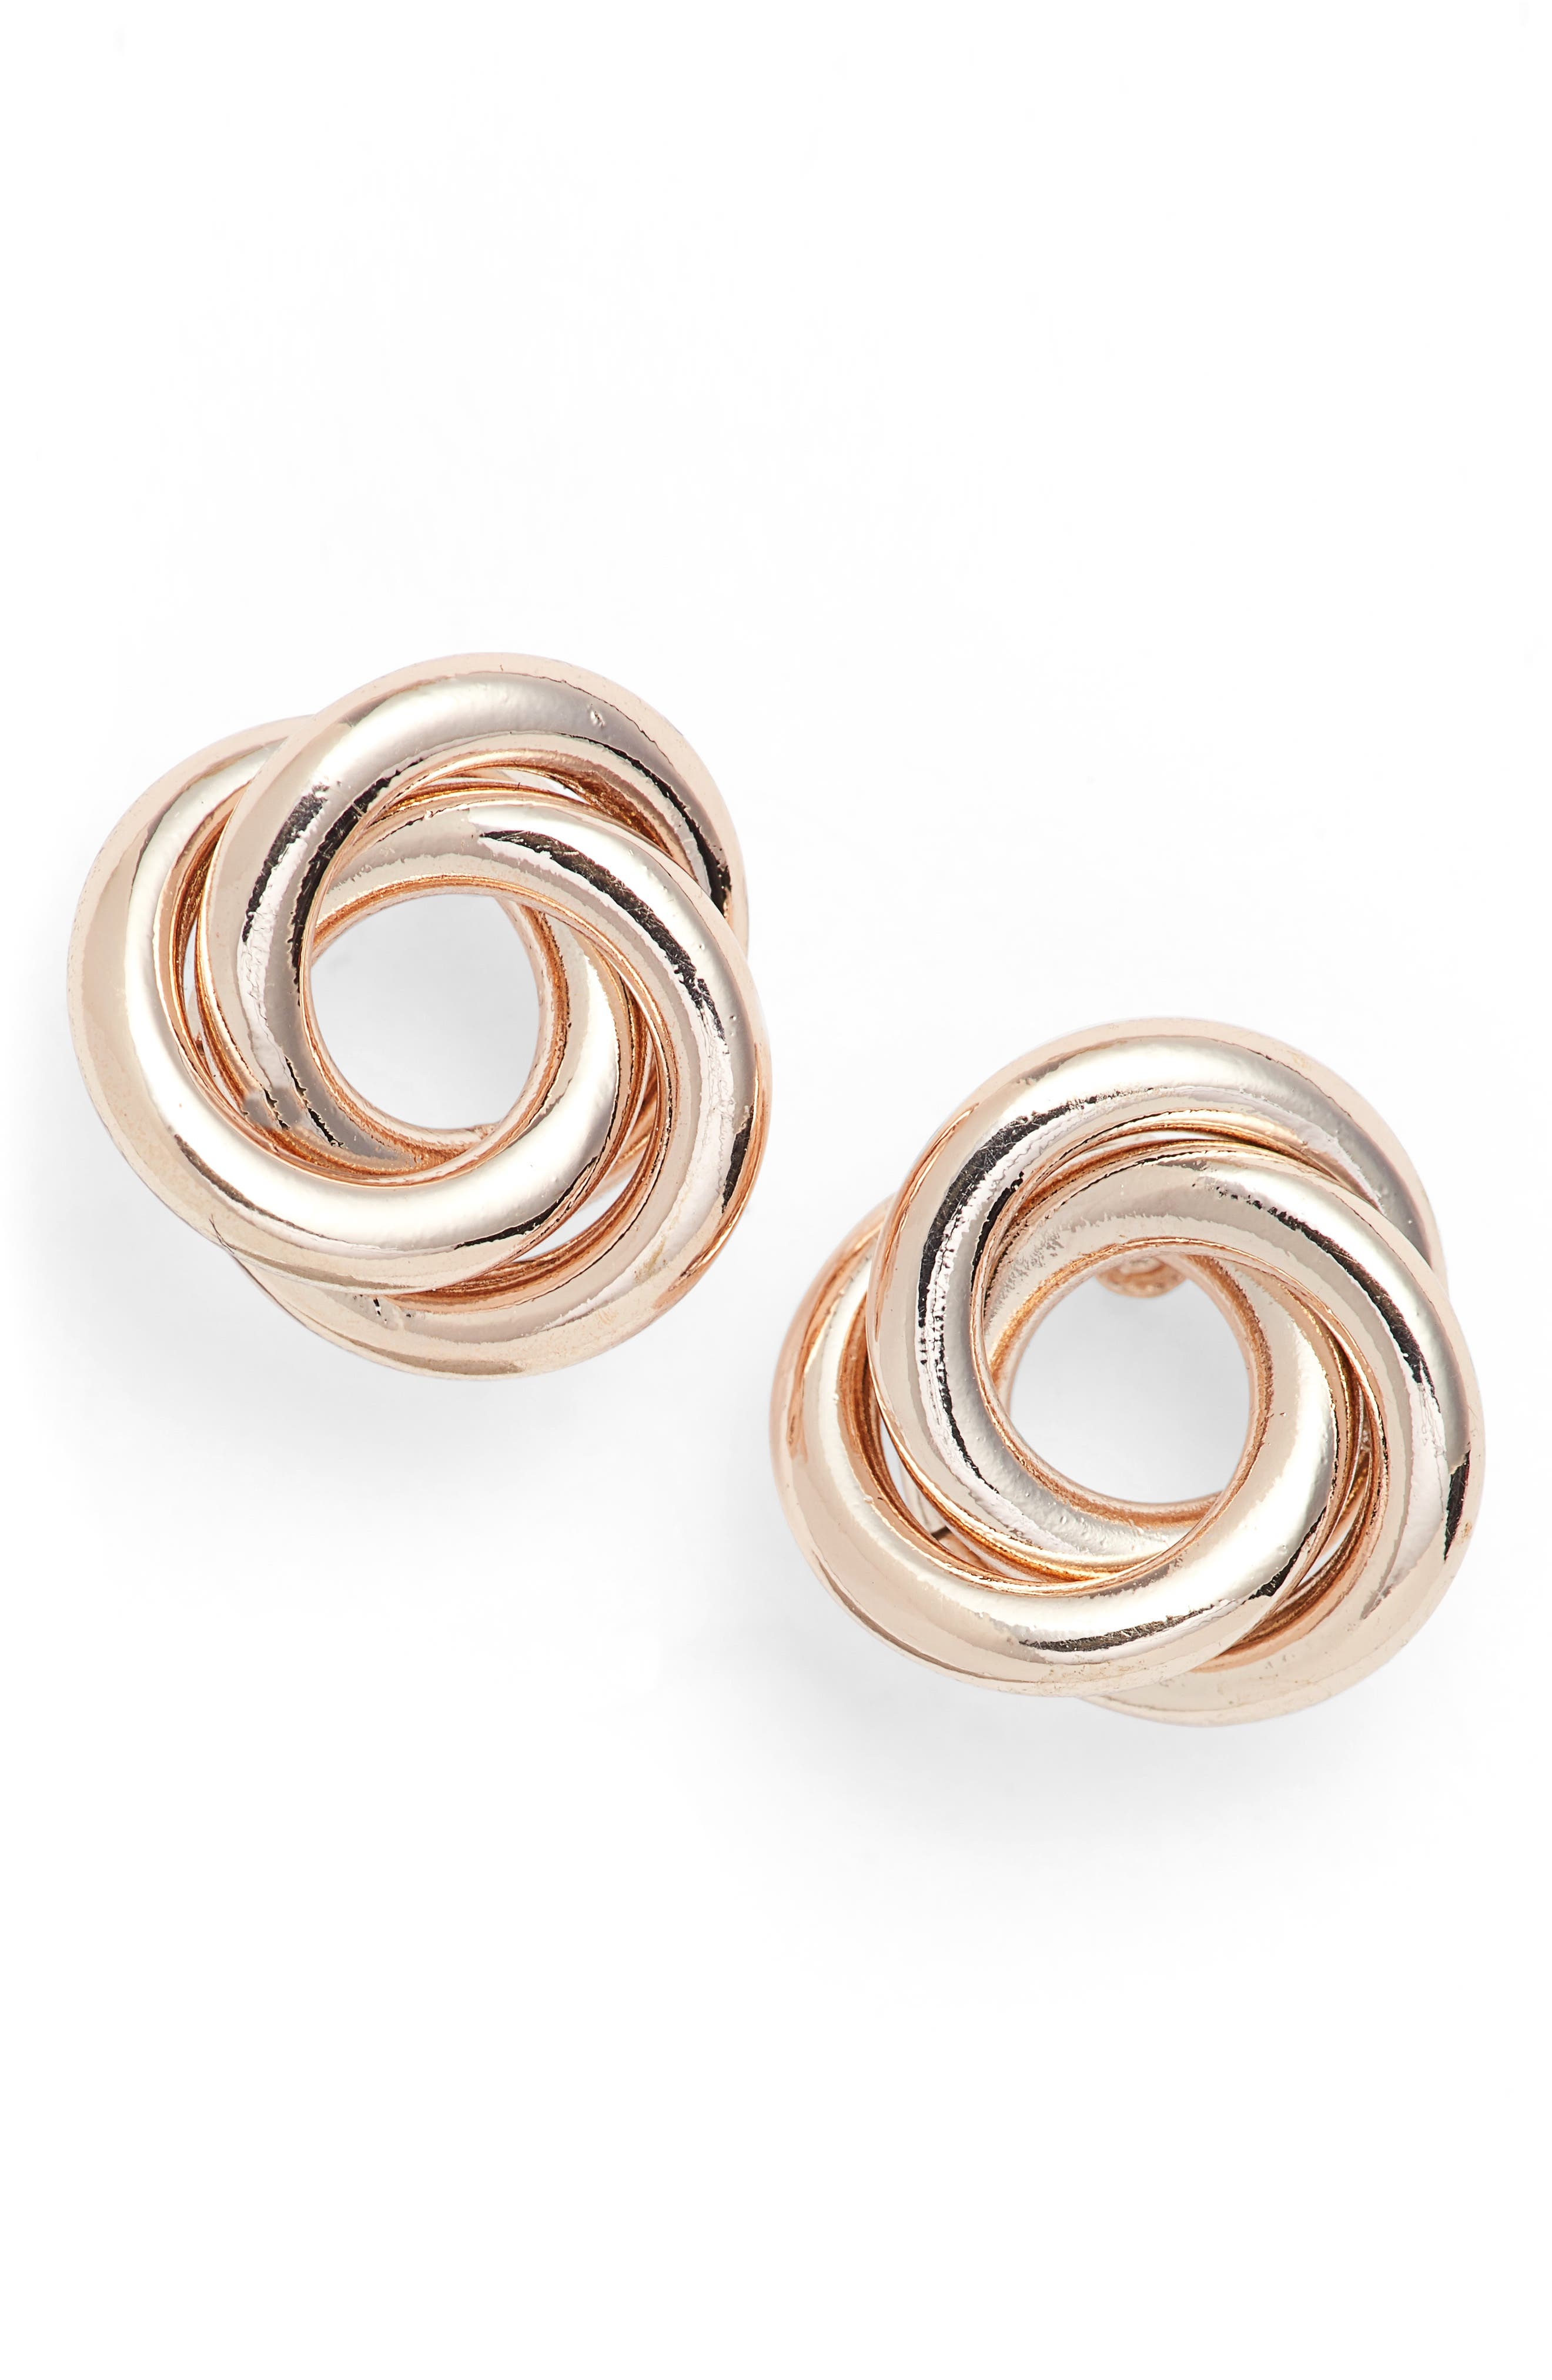 Main Image - Nordstrom Twisted Knot Stud Earrings